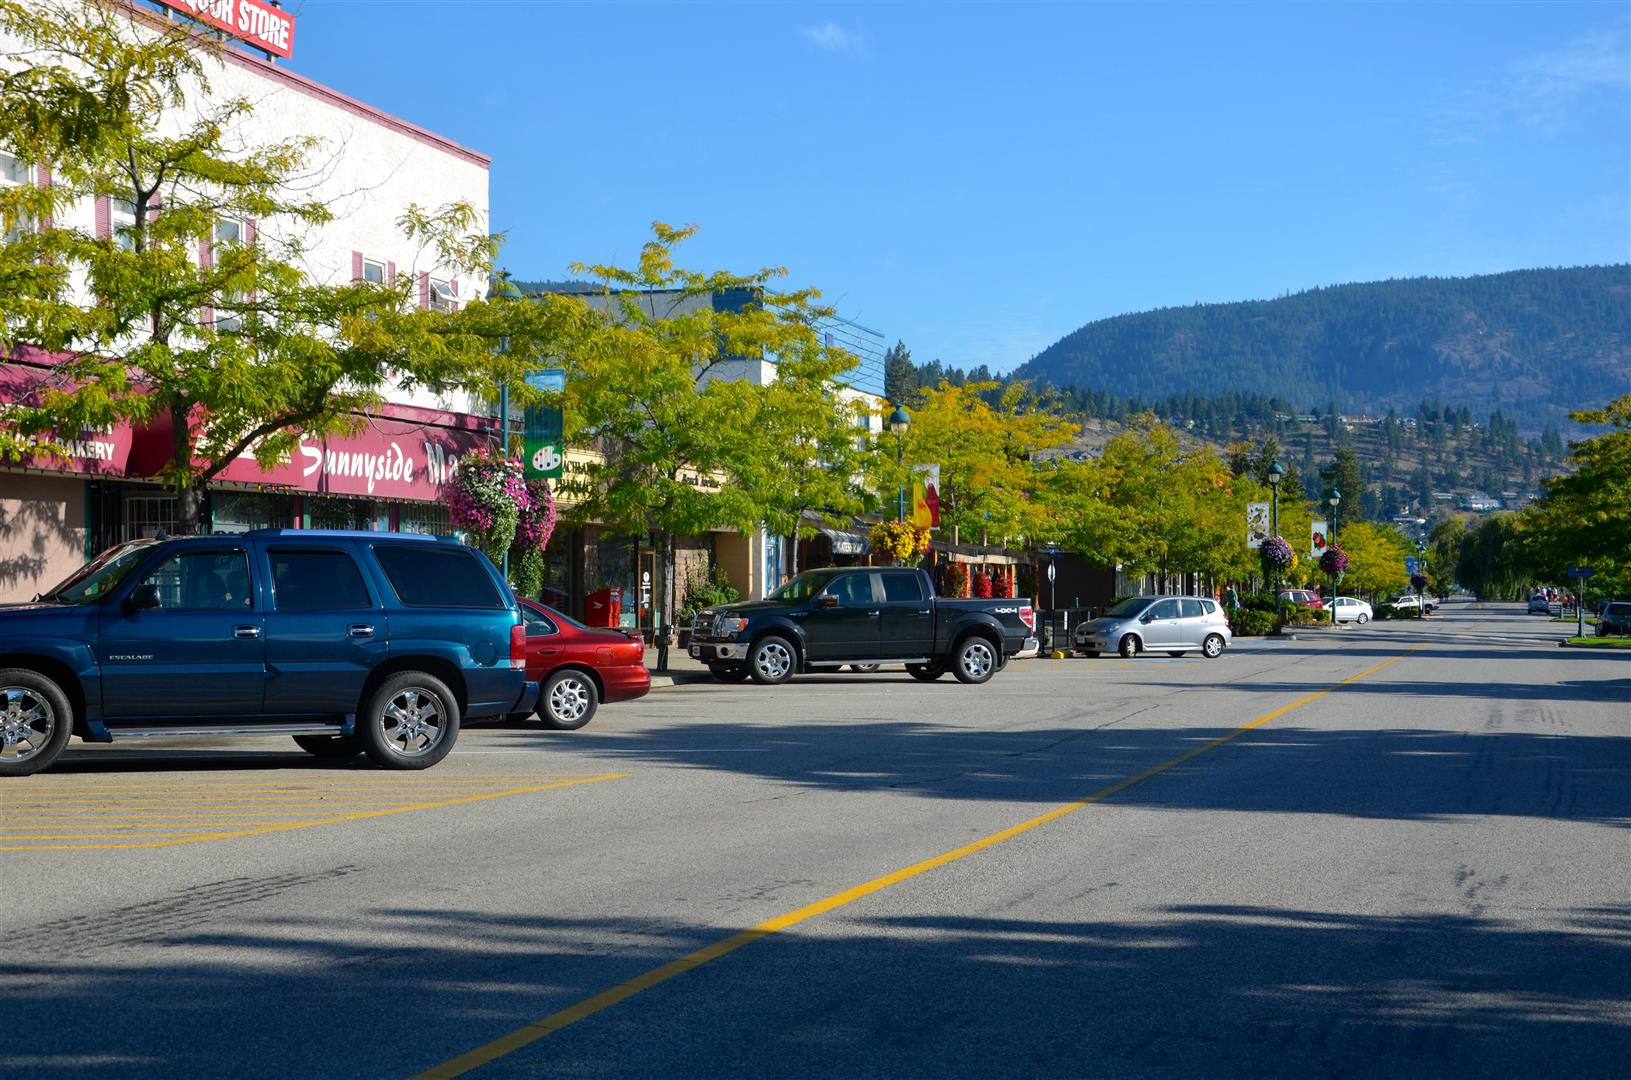 Downtown_Peachland.JPG